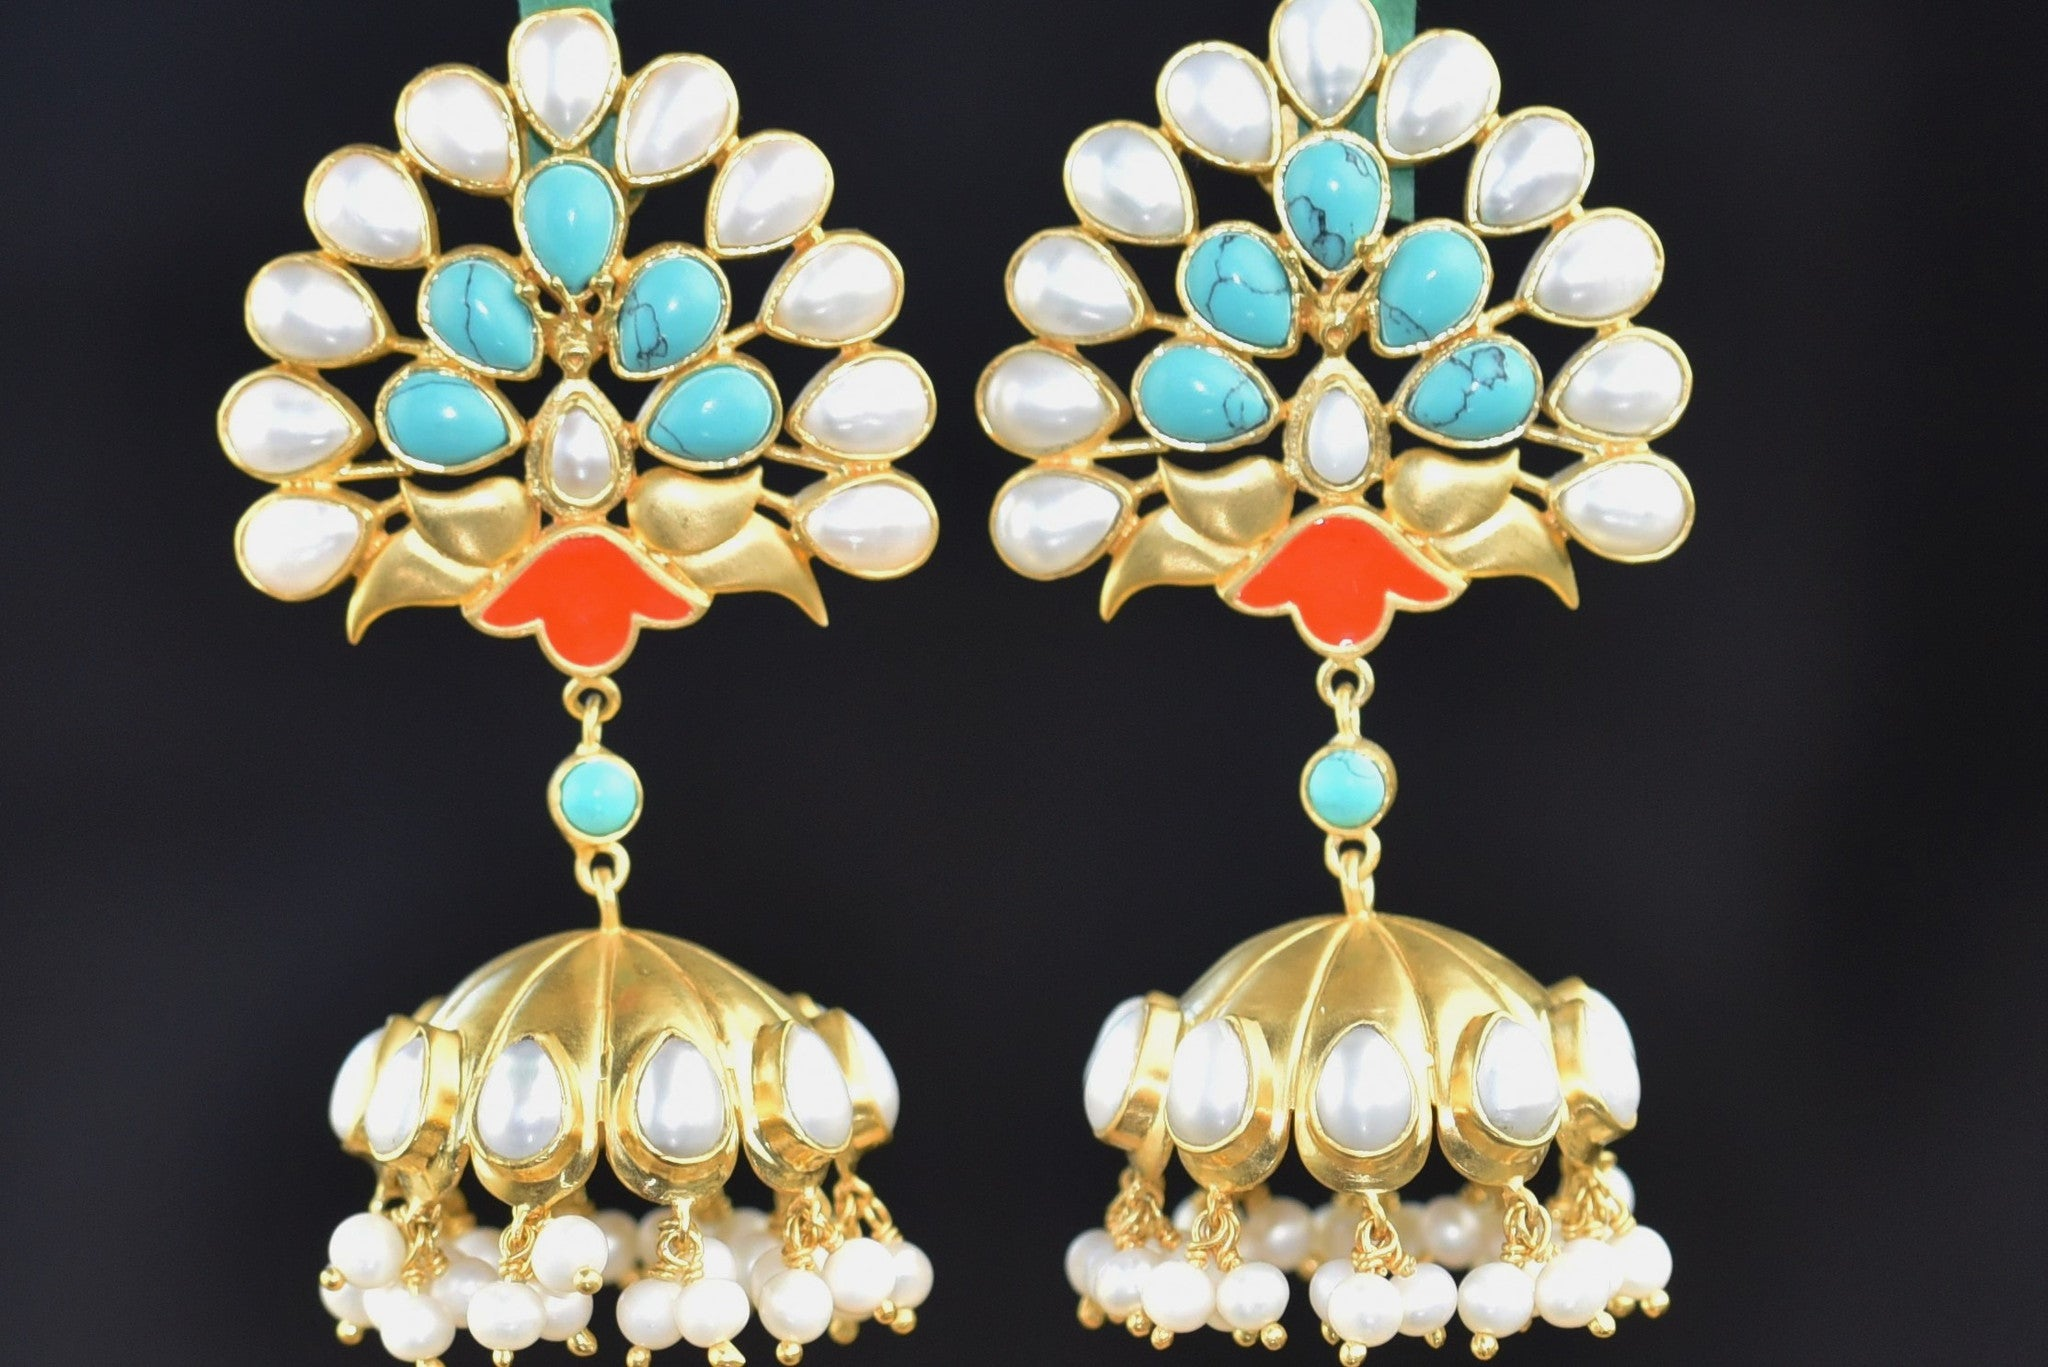 20A612 Silver Gold Plated Peacock Style Earrings With Pearl